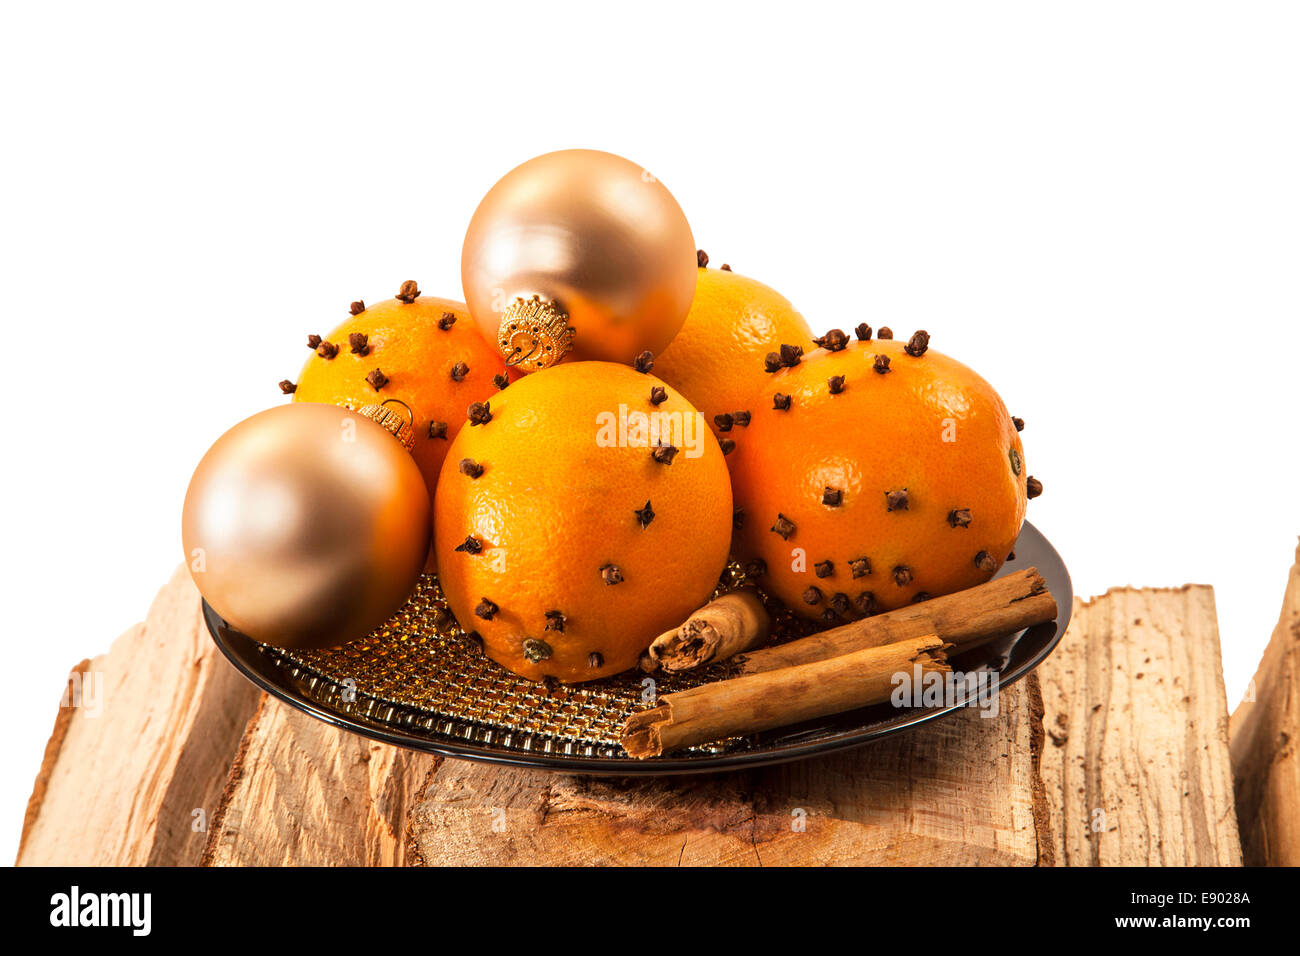 Christmas orange and baubles with cinnamon sticks on firewood over white background Stock Photo